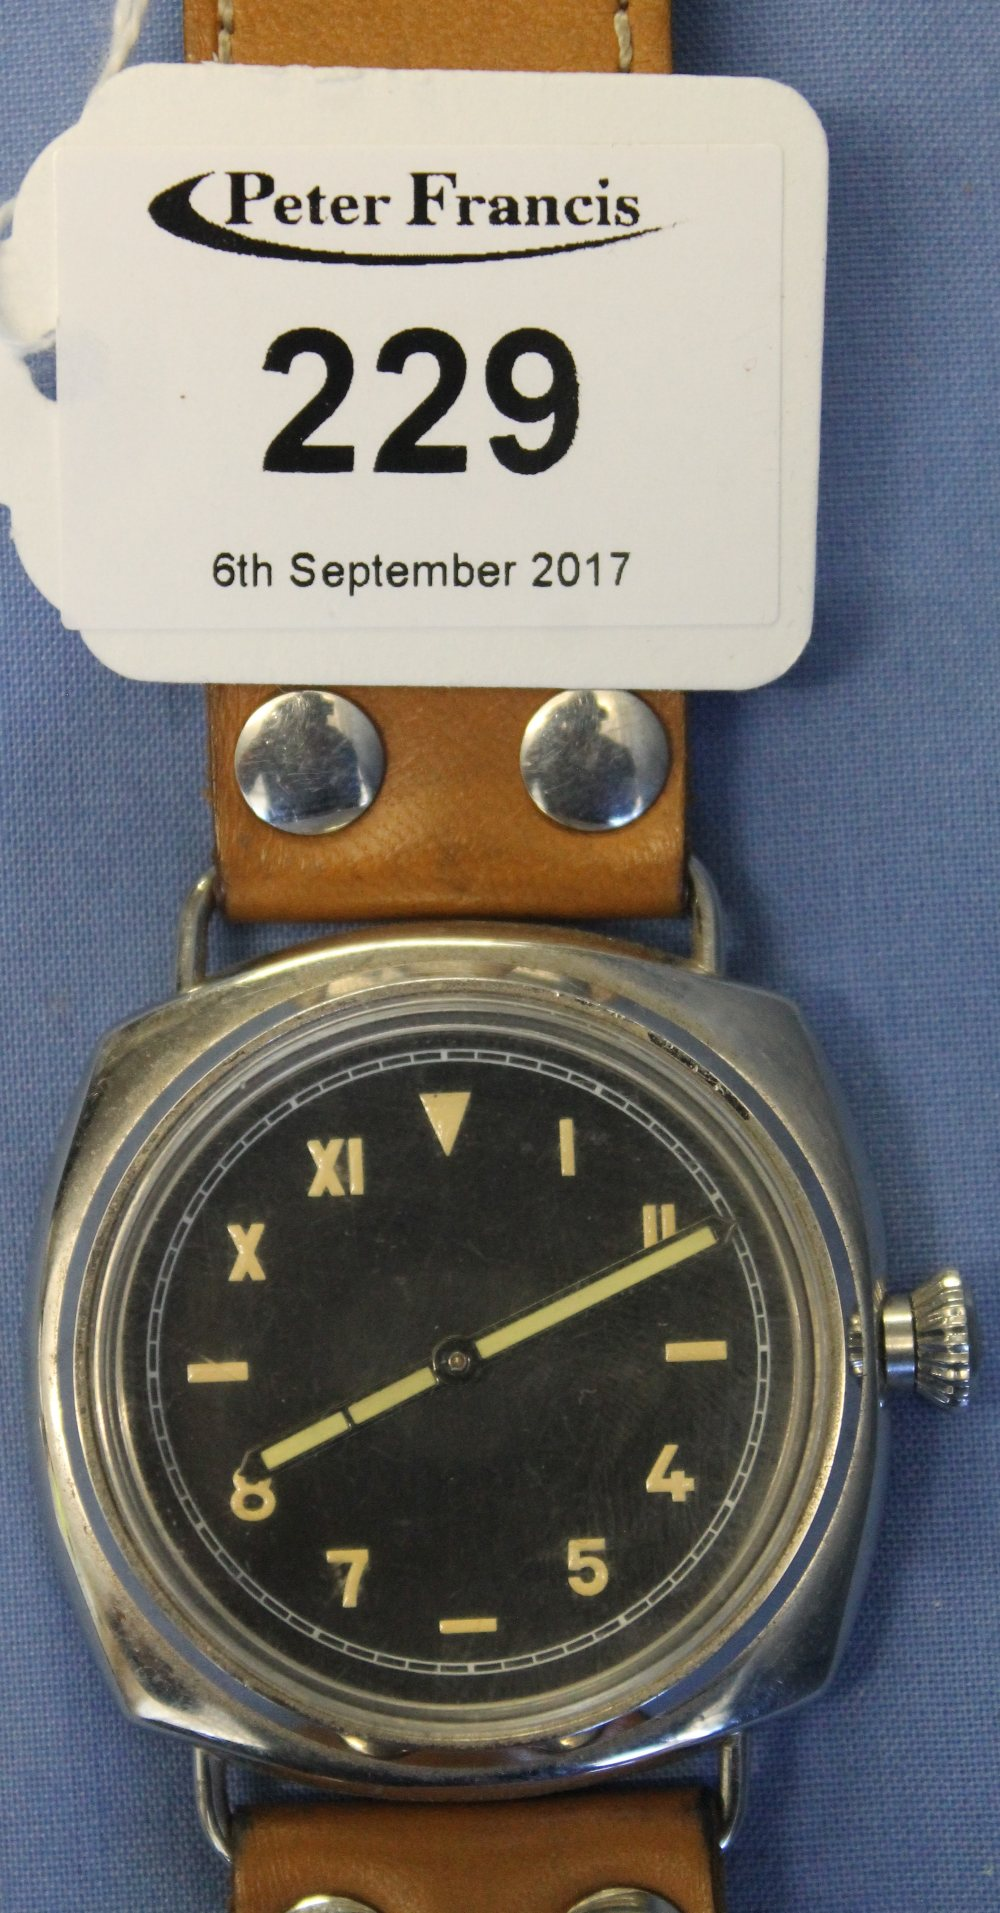 Lot 229 - Panerai copy of a gent's wristwatch. Movement marked Rolex. (B.P. 24% incl.